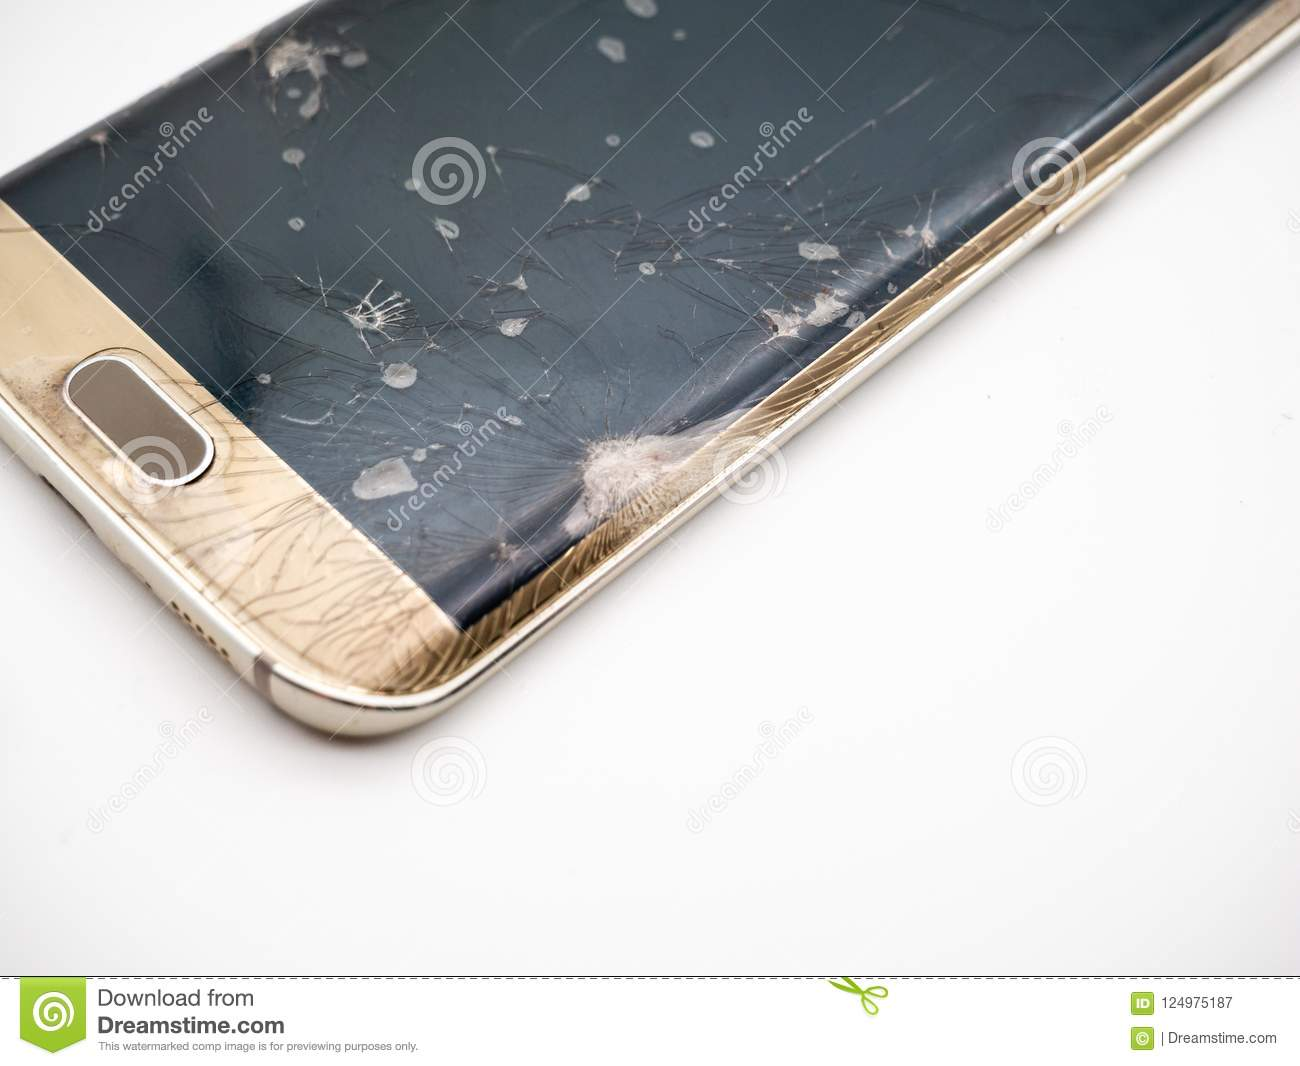 Close-up of damaged smartphone display with white background